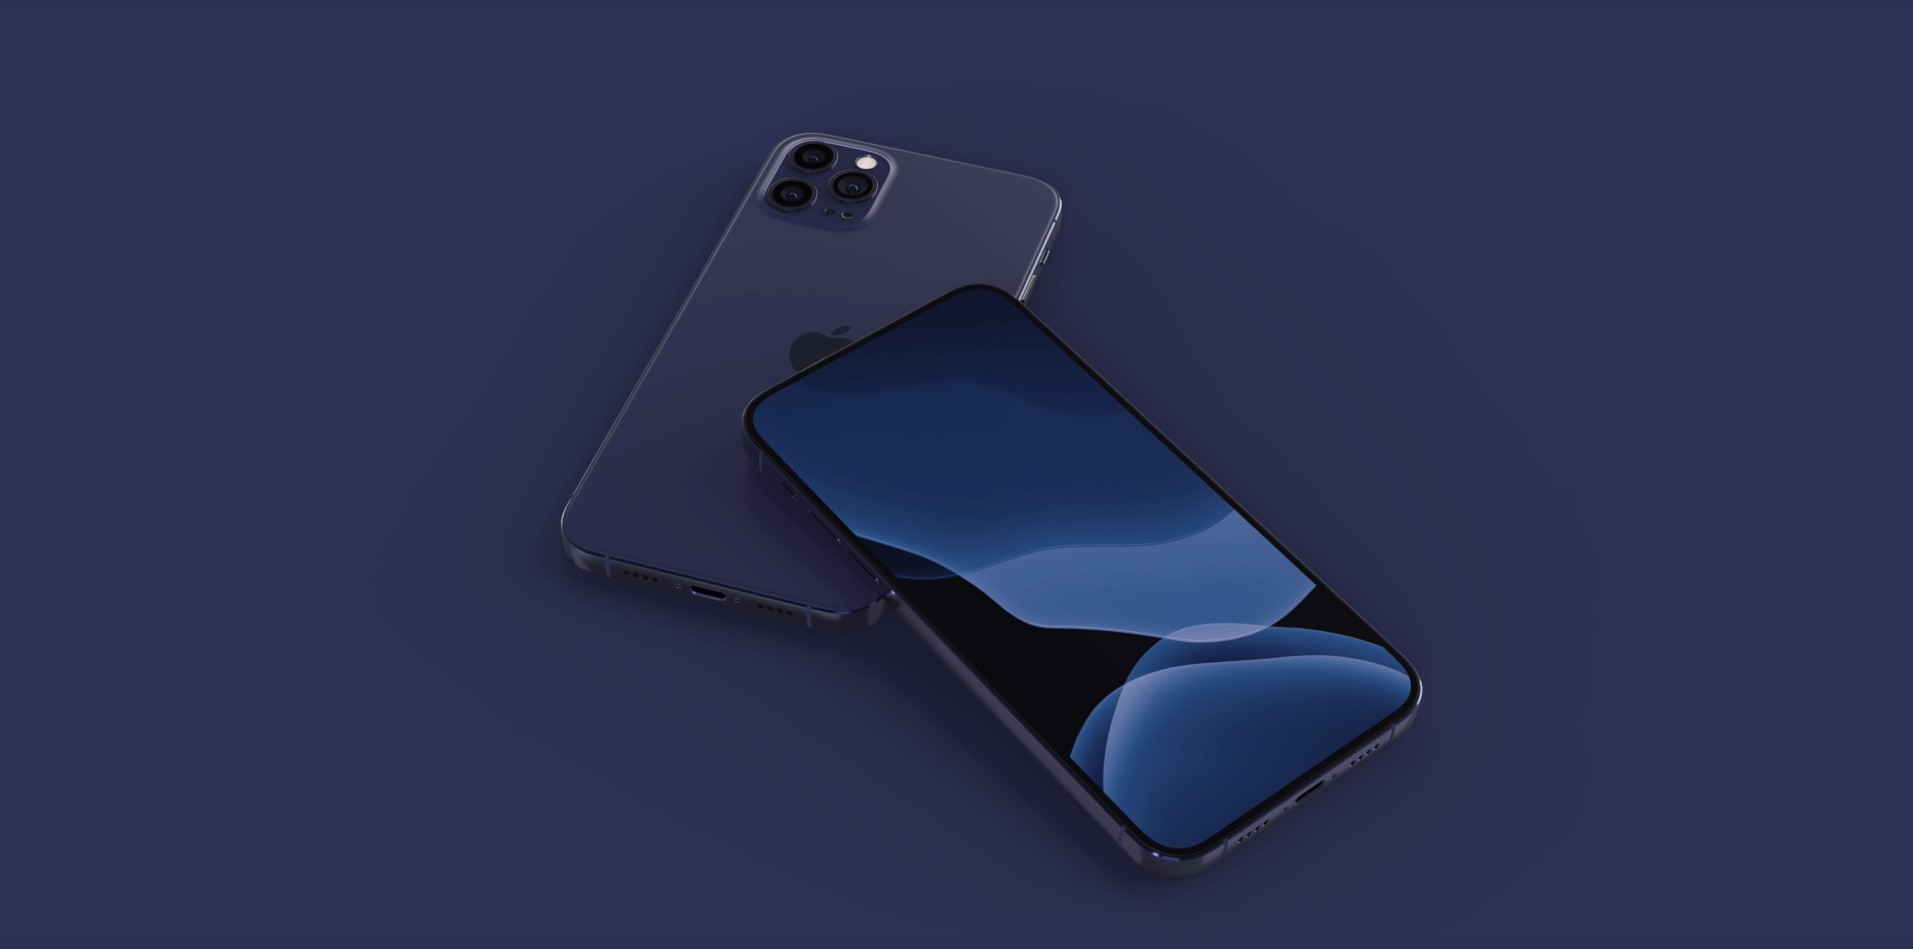 Image of article '5G iPhone 12 To Launch In Fall But Future Products Will Be Delayed'